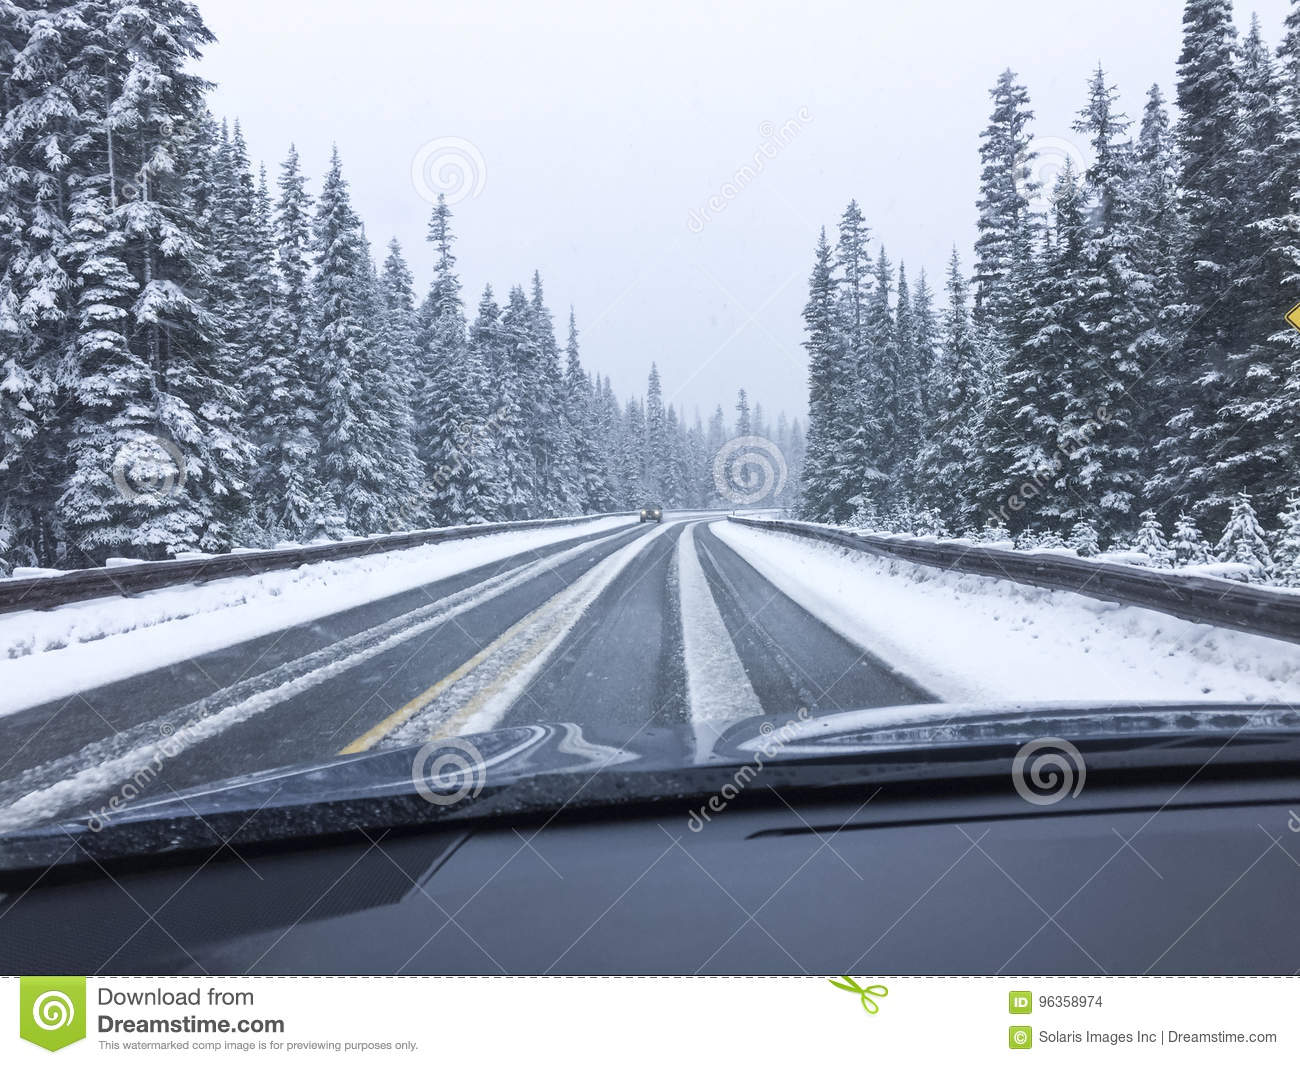 Car driving on snow-covered snowy mountain road in winter snow. Driver`s point of view viewpoint looking through windshield.